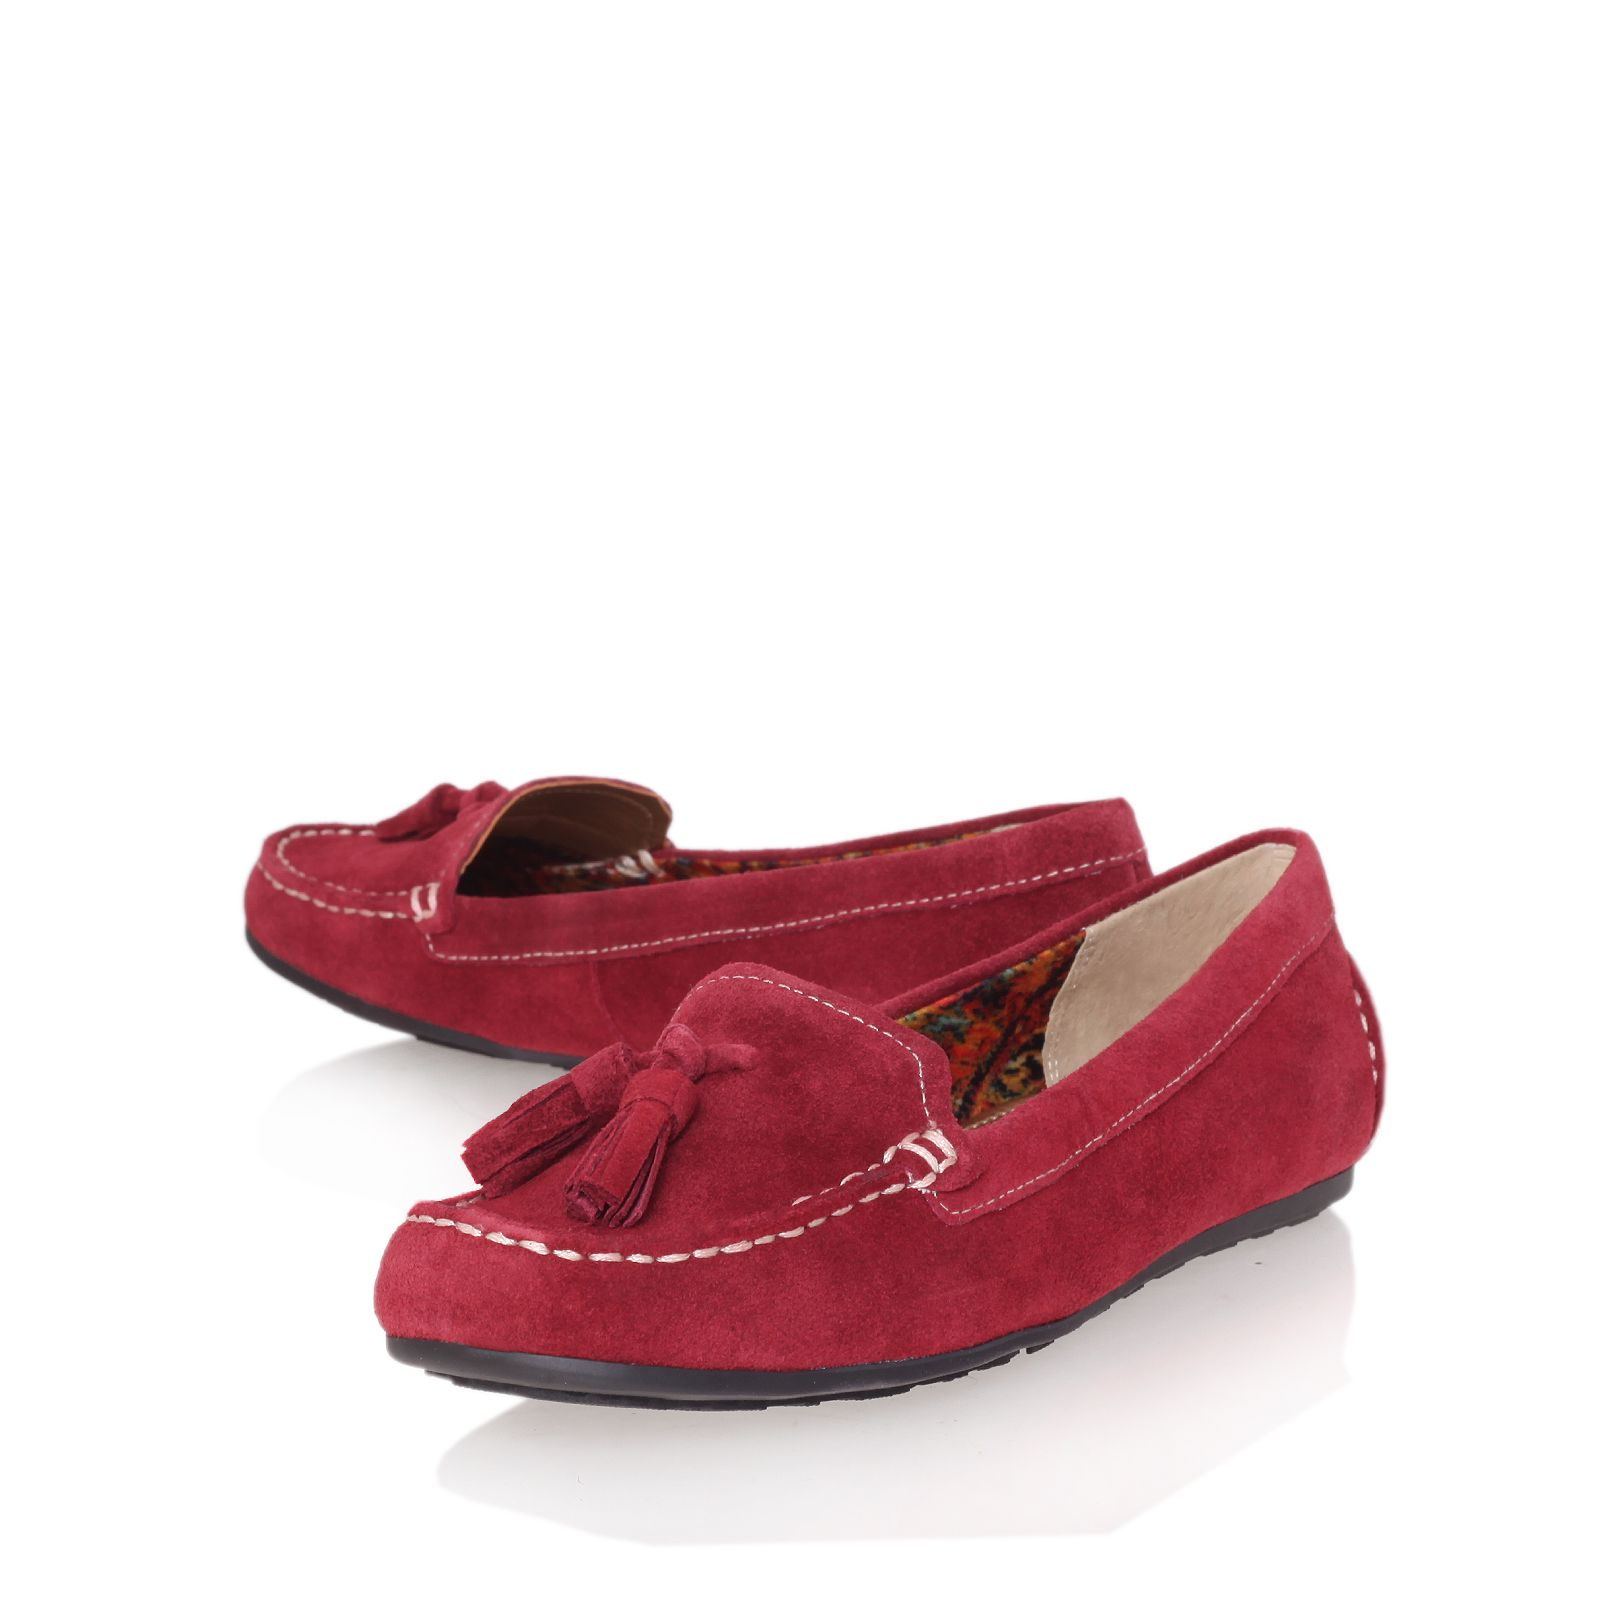 Syver loafer shoes